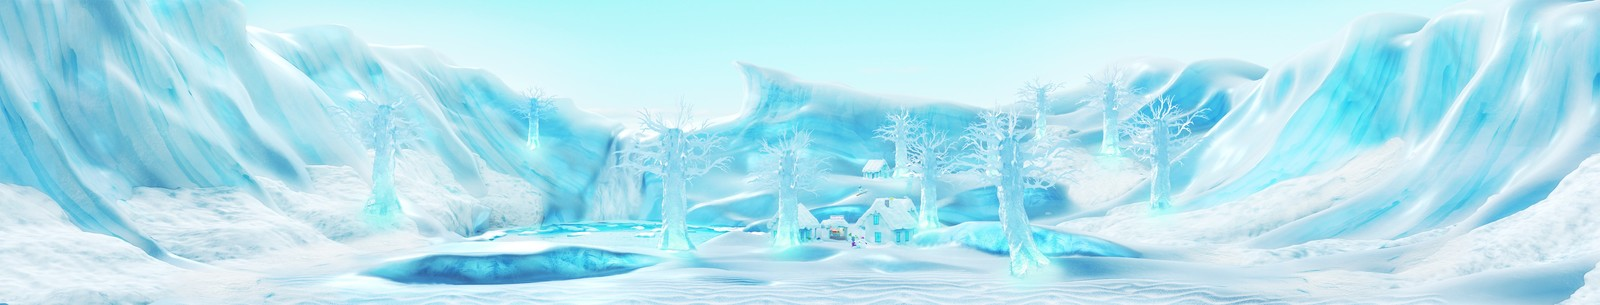 Background artwork that I created with Blender 3D and Phtoshop.